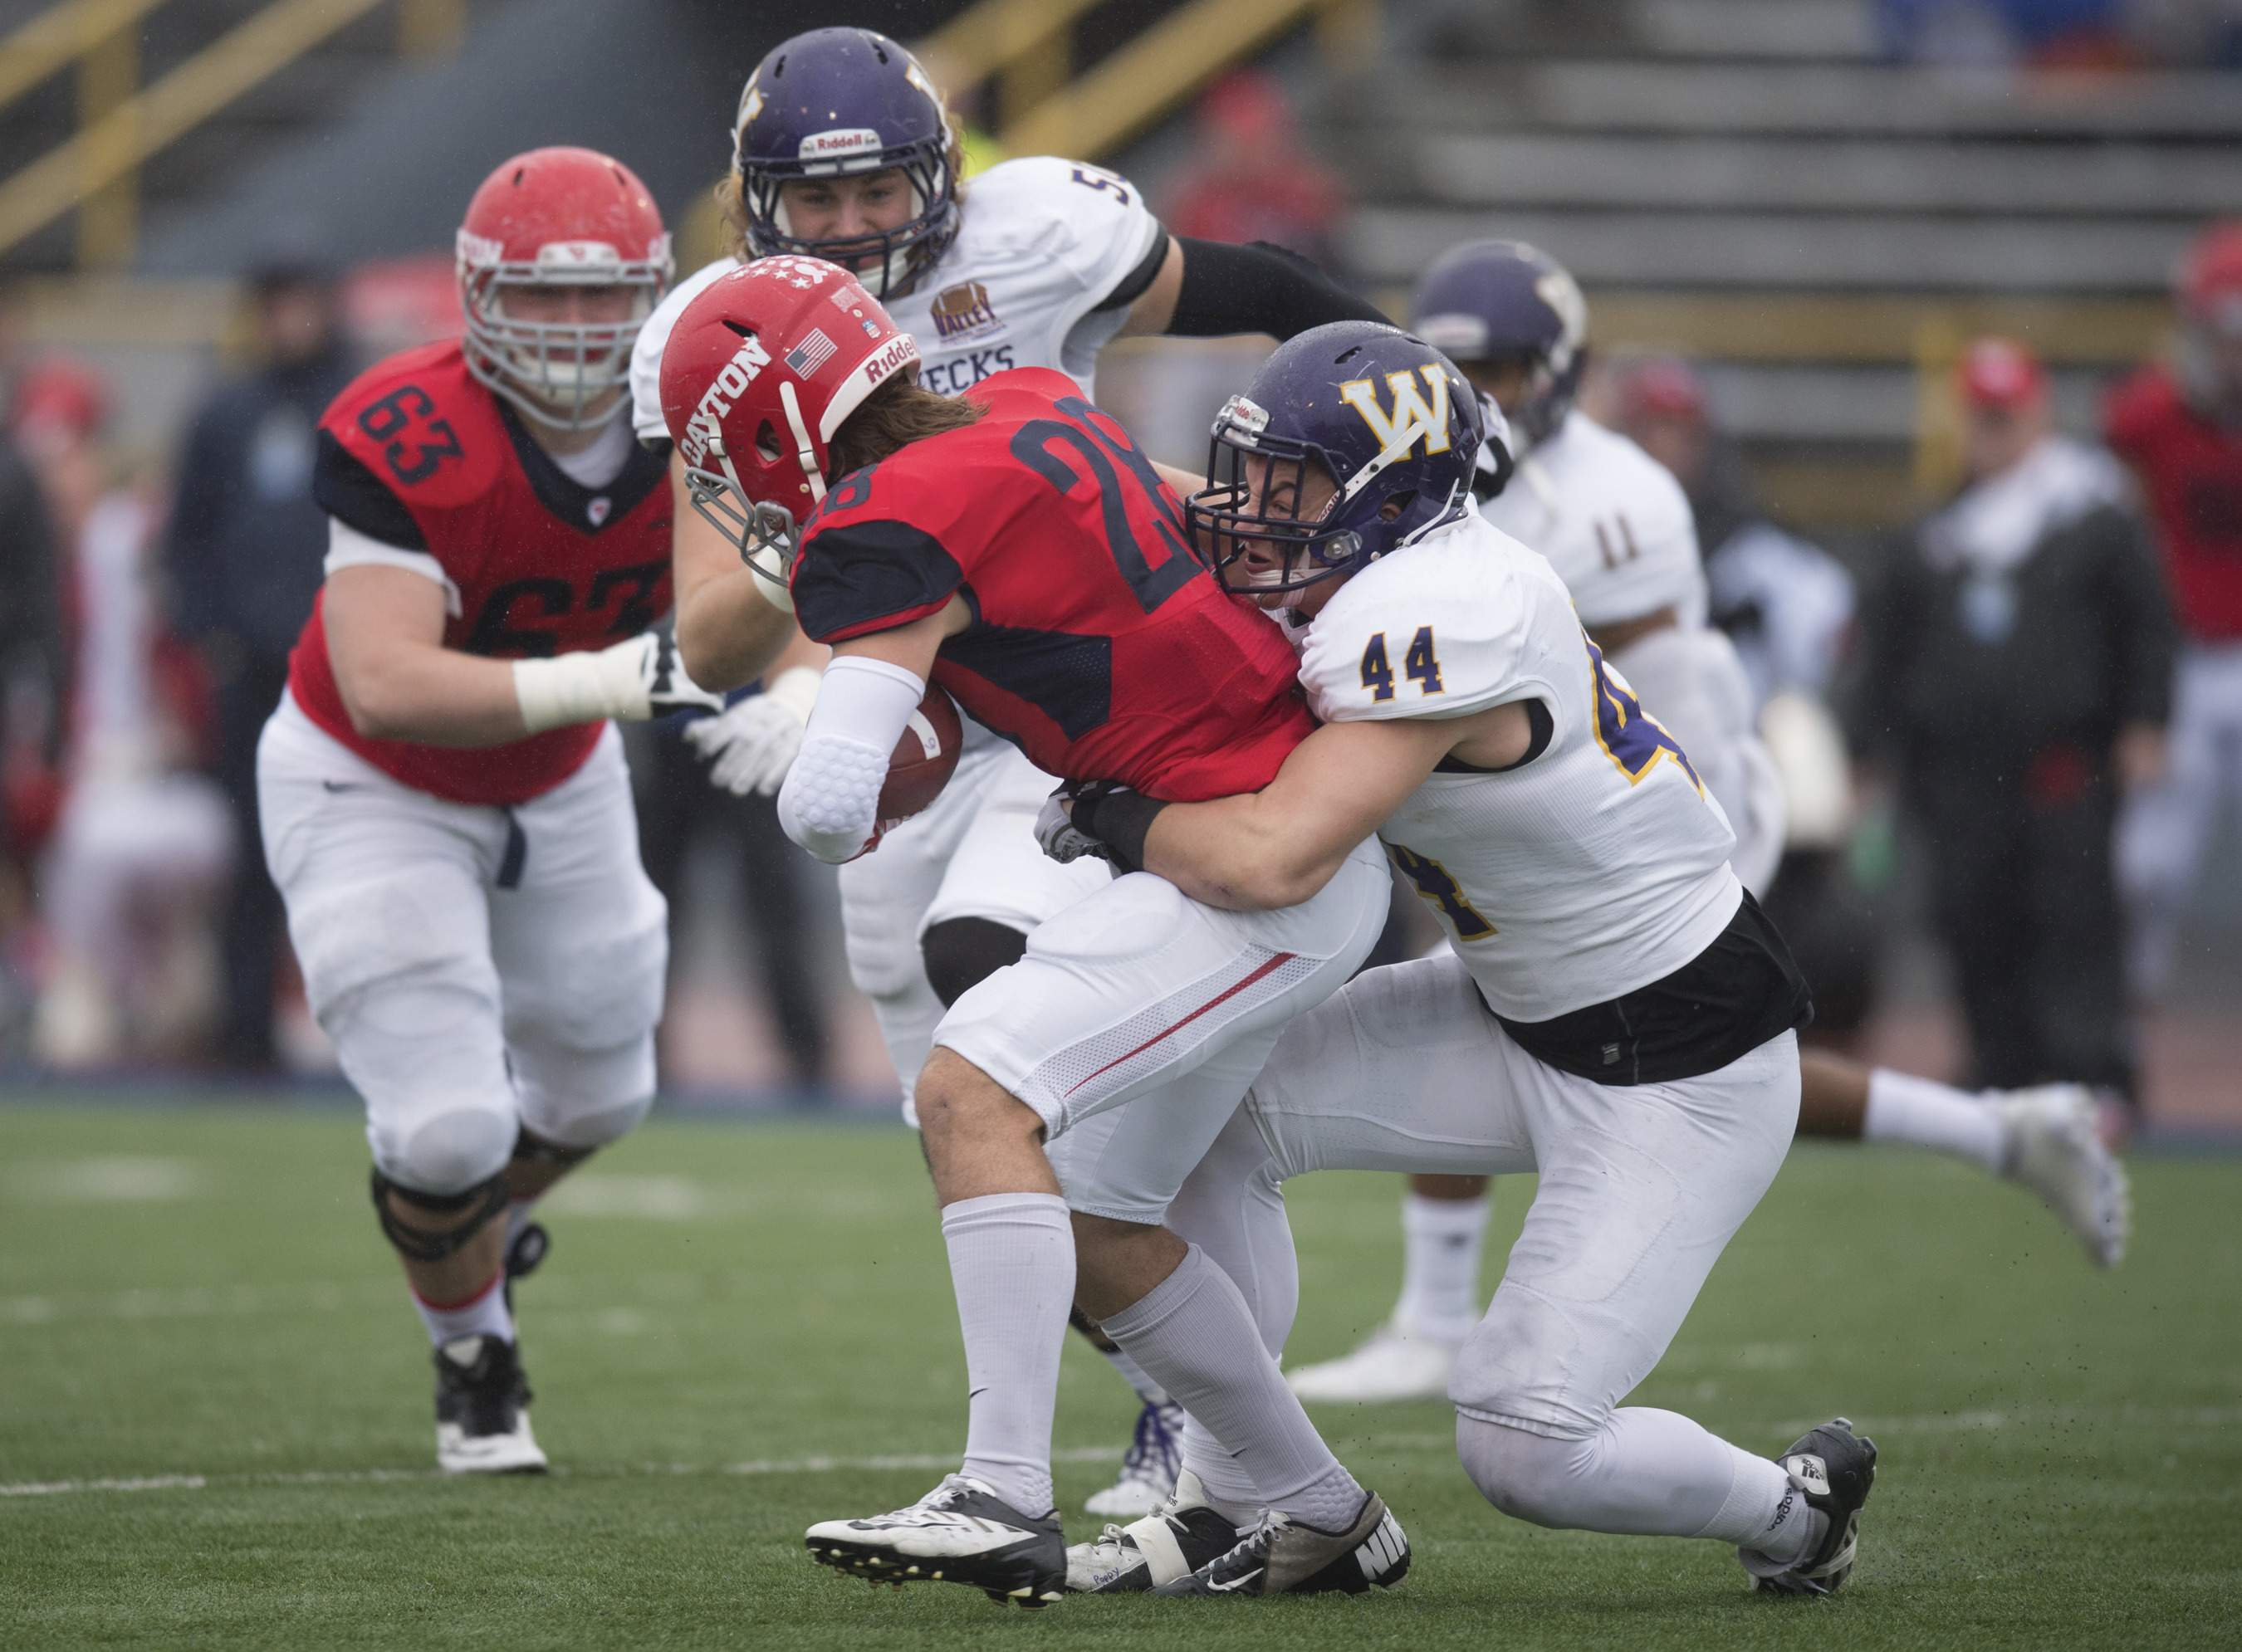 Western Illinois at Dayton, FCS Playoffs (Qunicy Herald-Whig)